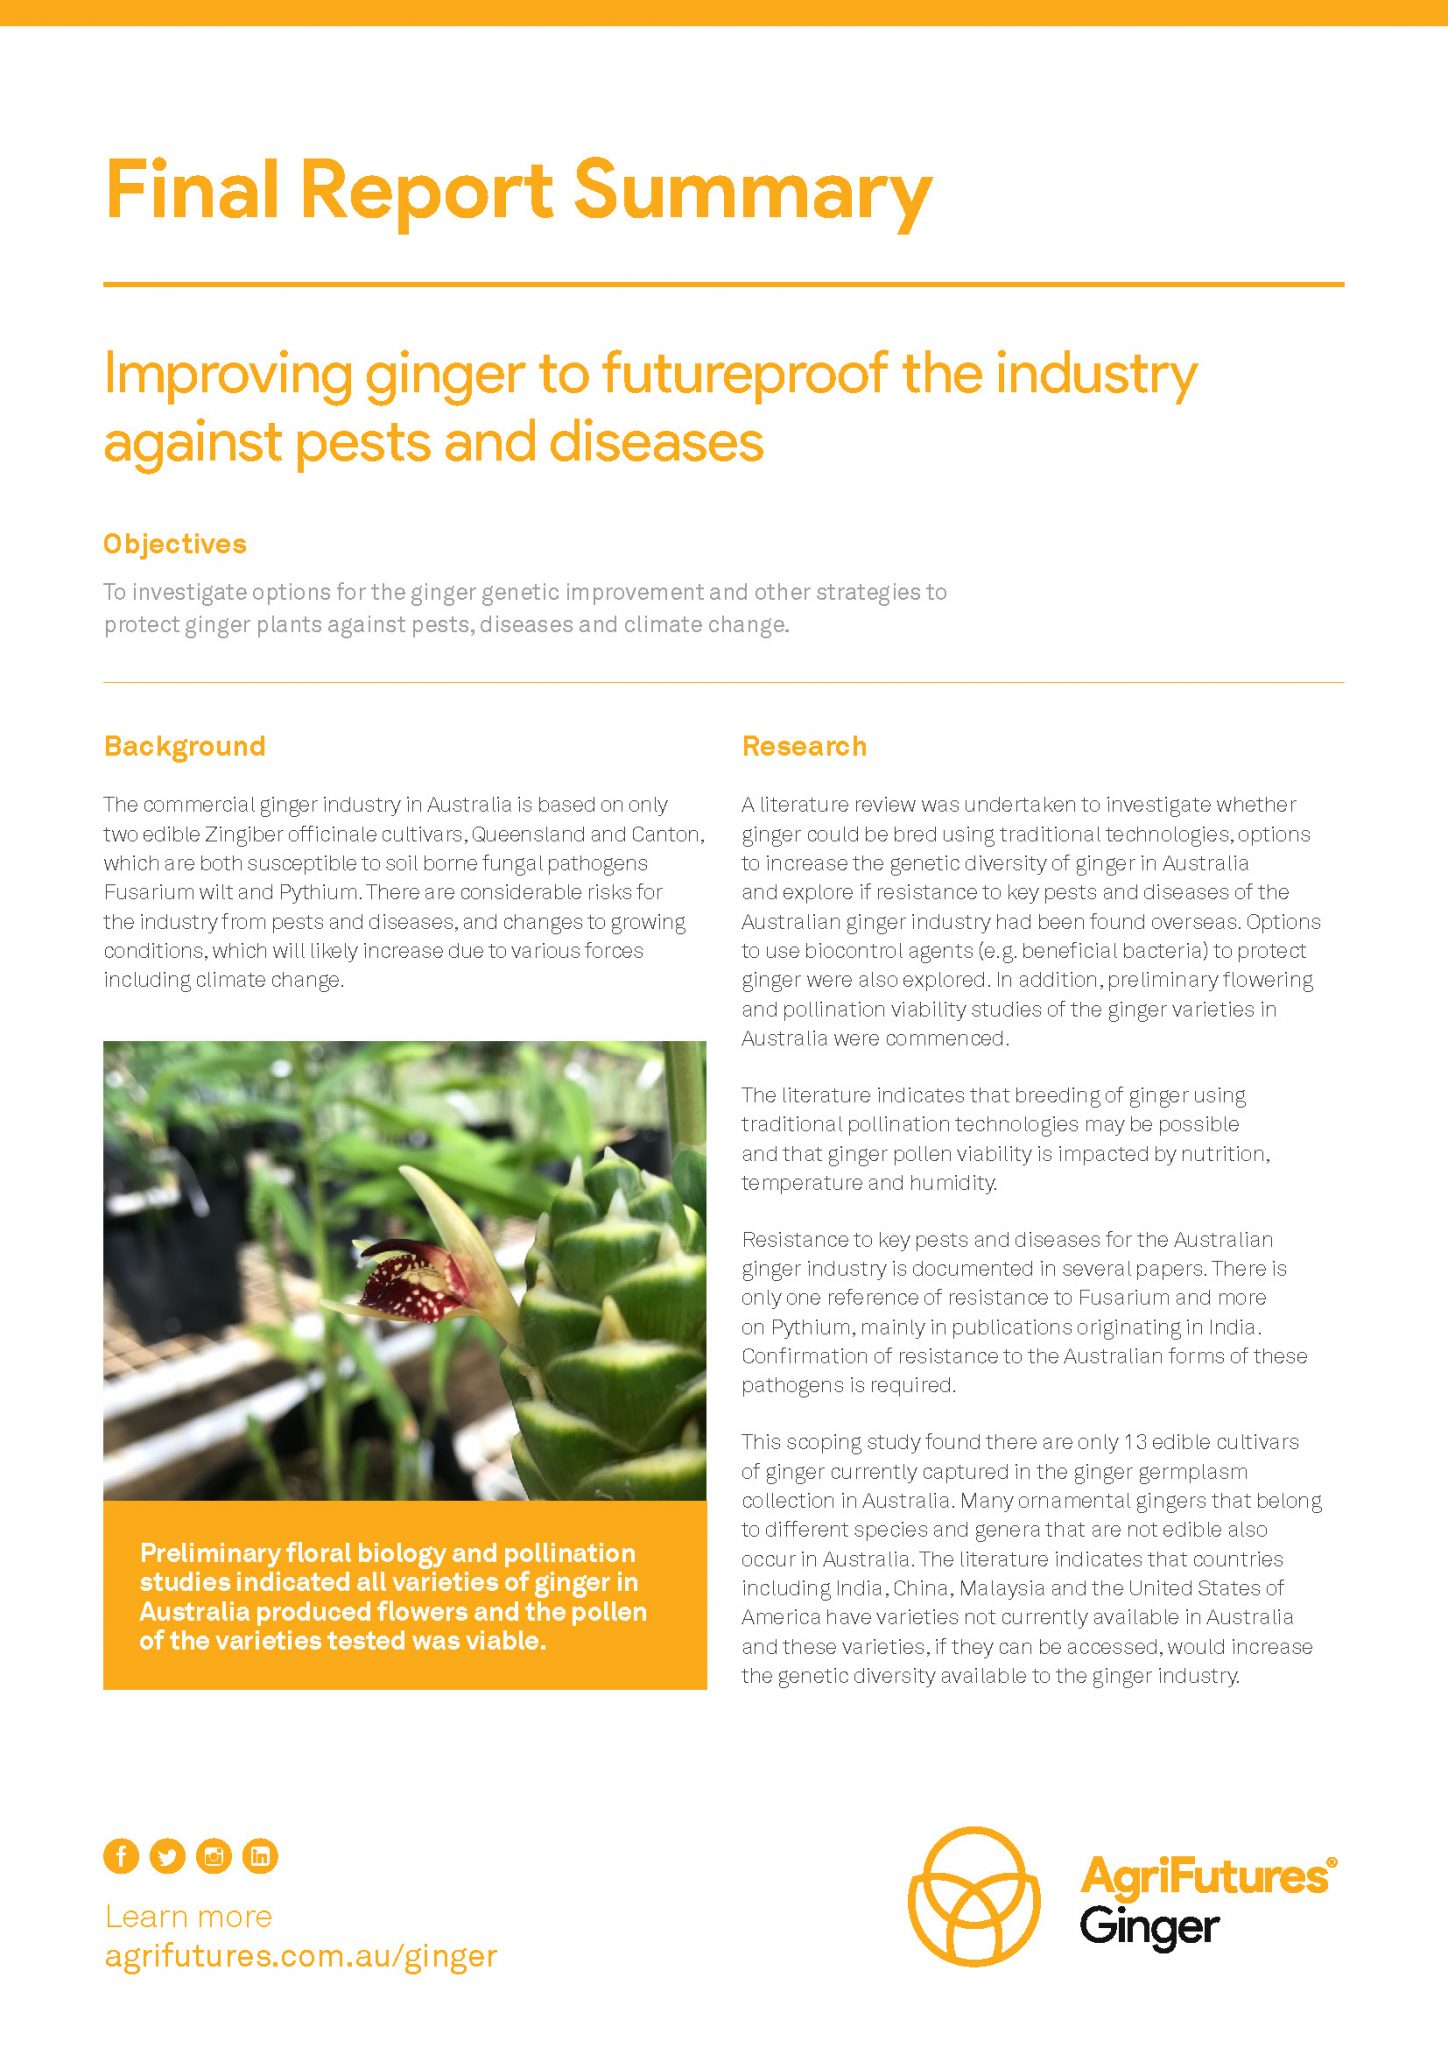 Final Report Summary: Improving ginger to futureproof the industry against pests and diseases - image